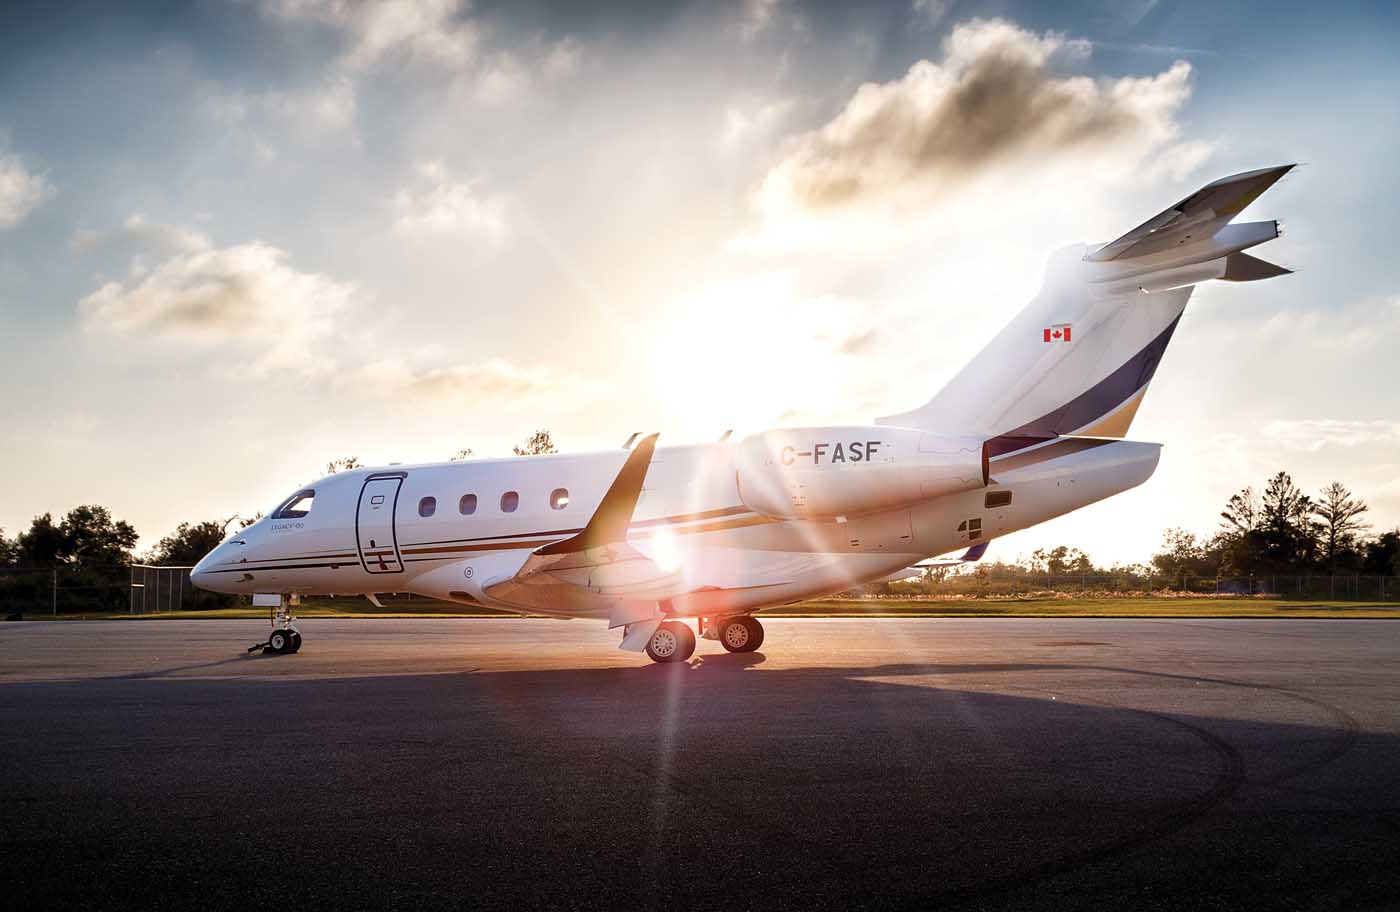 AirSprint operates a fleet of 12 aircraft, including Embraer Legacy 450, Cessna Citation CJ2+, and Cessna Citation CJ3+ business jets. Adam Falwell Photo